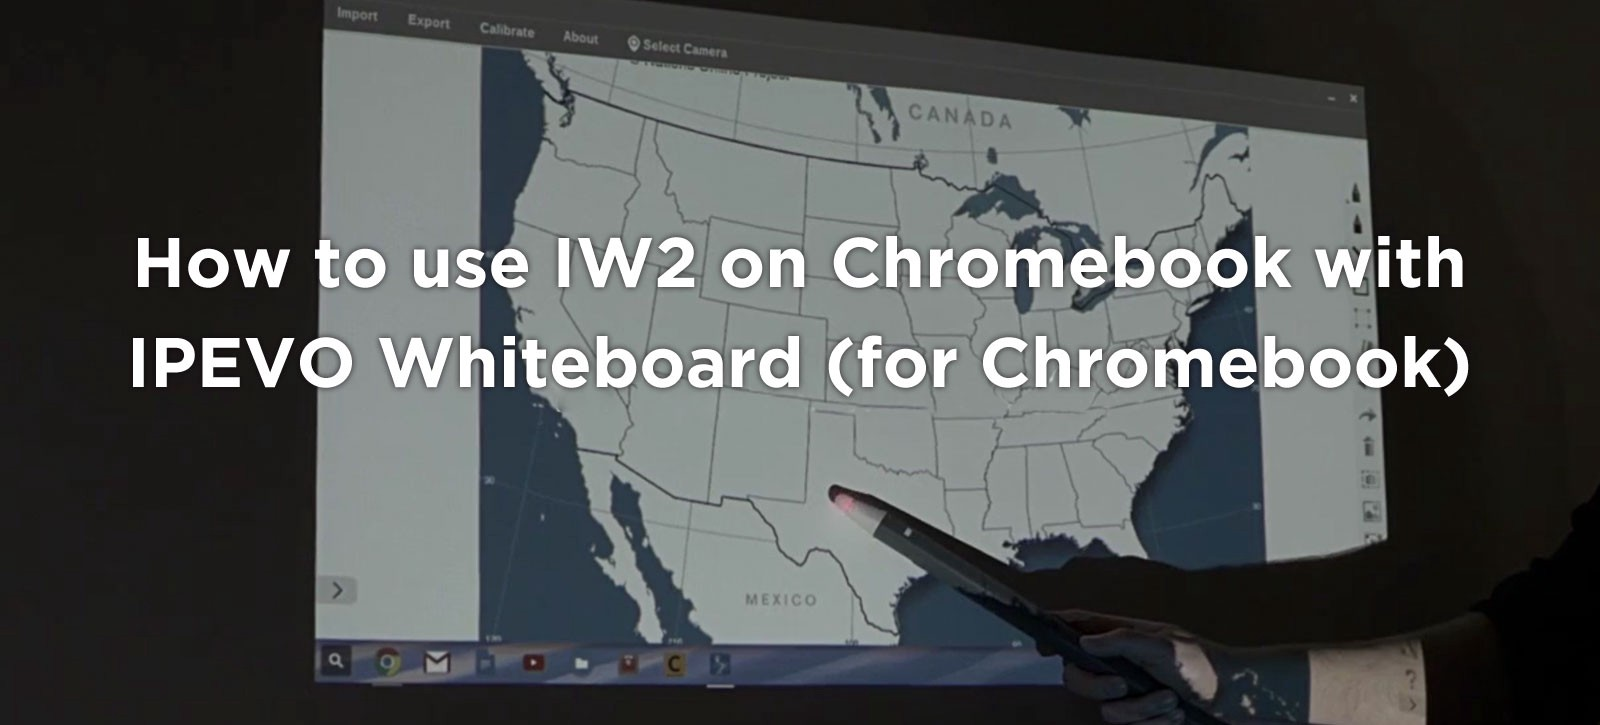 How to use IW2 on Chromebook with IPEVO Whiteboard (for Chromebook)